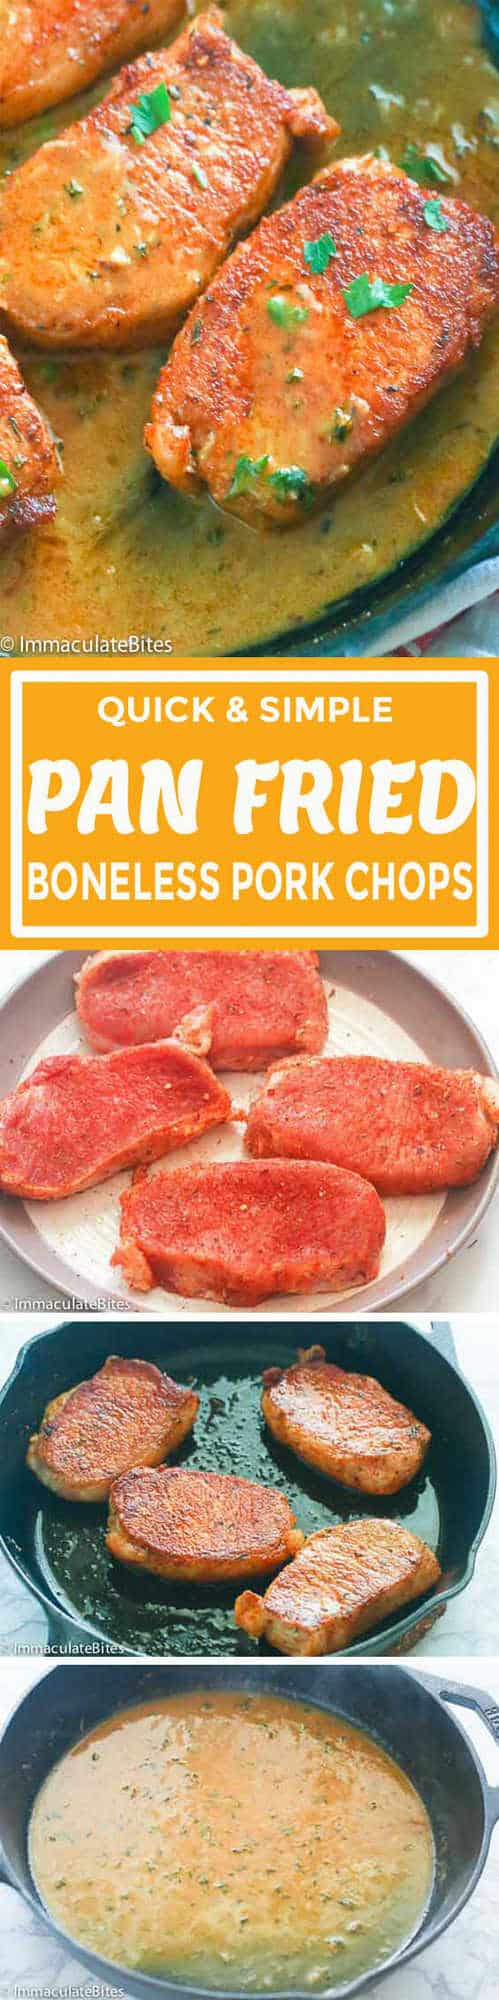 Pan Fried Boneless Pork Chops